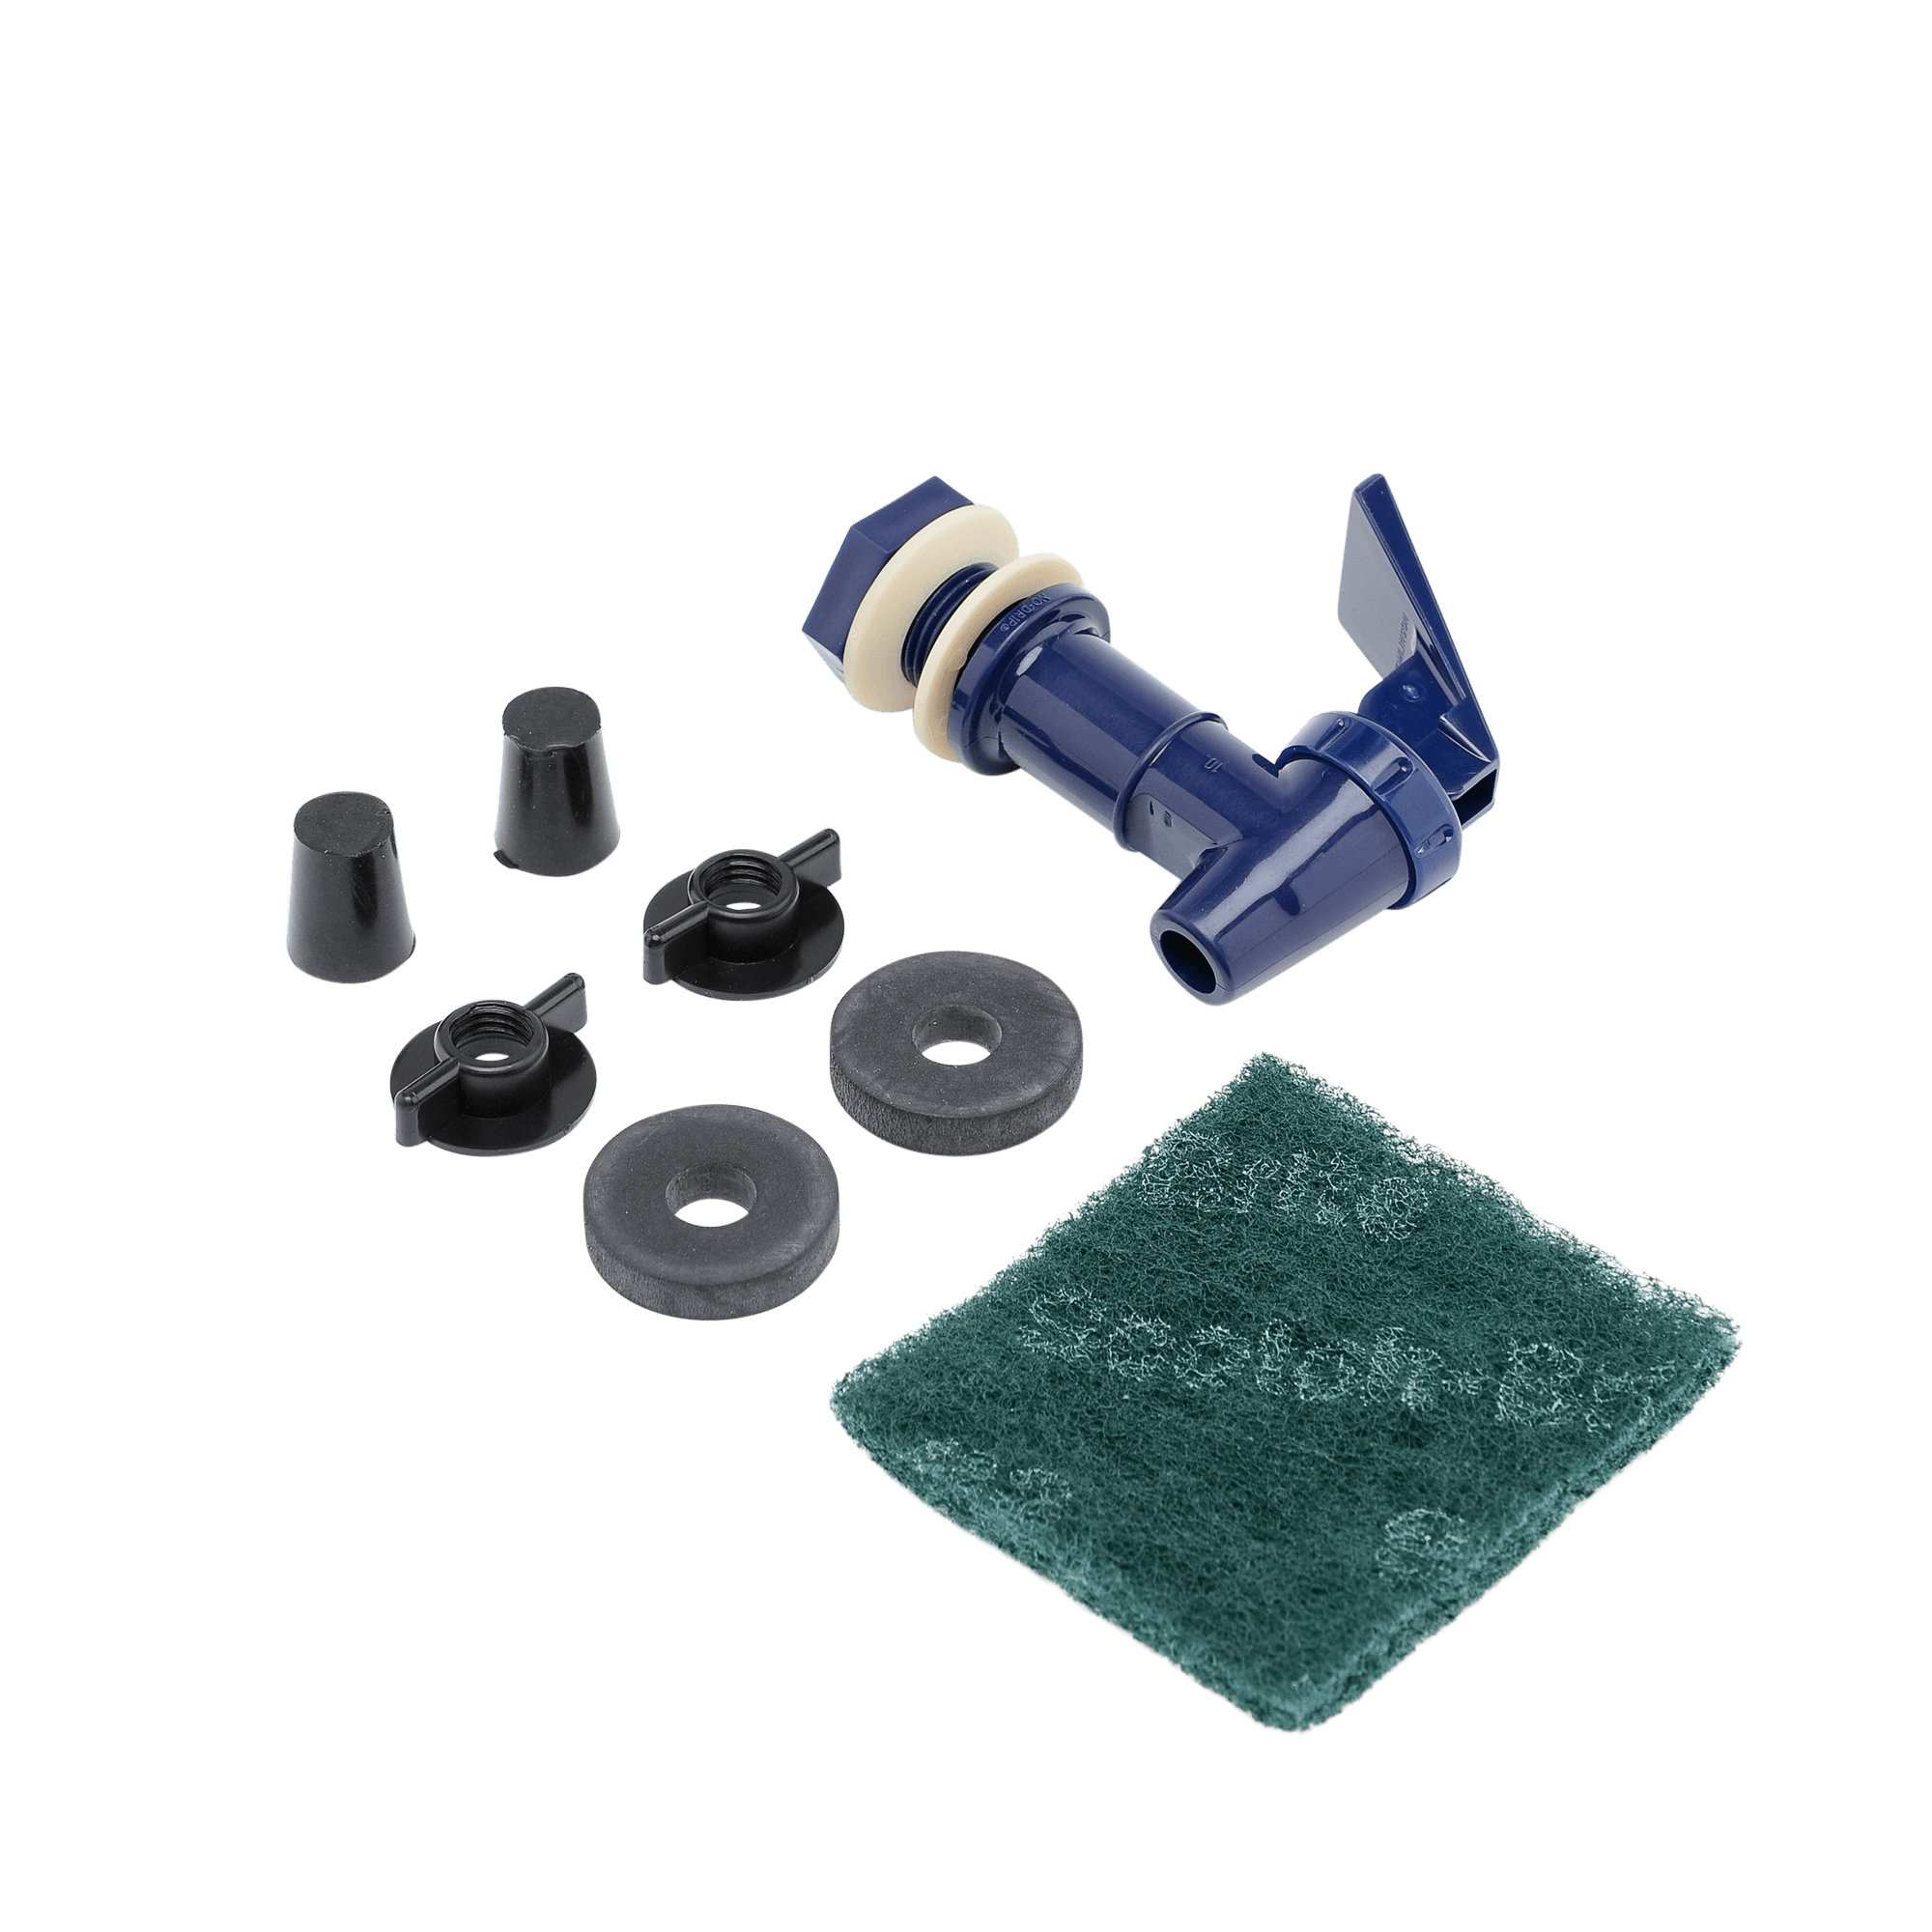 Replacement Kit for Berkey Light System w/ Black Berkey Elements (large plugs)-Replacement Parts-New Millennium Concepts LTD-Epic Water Systems